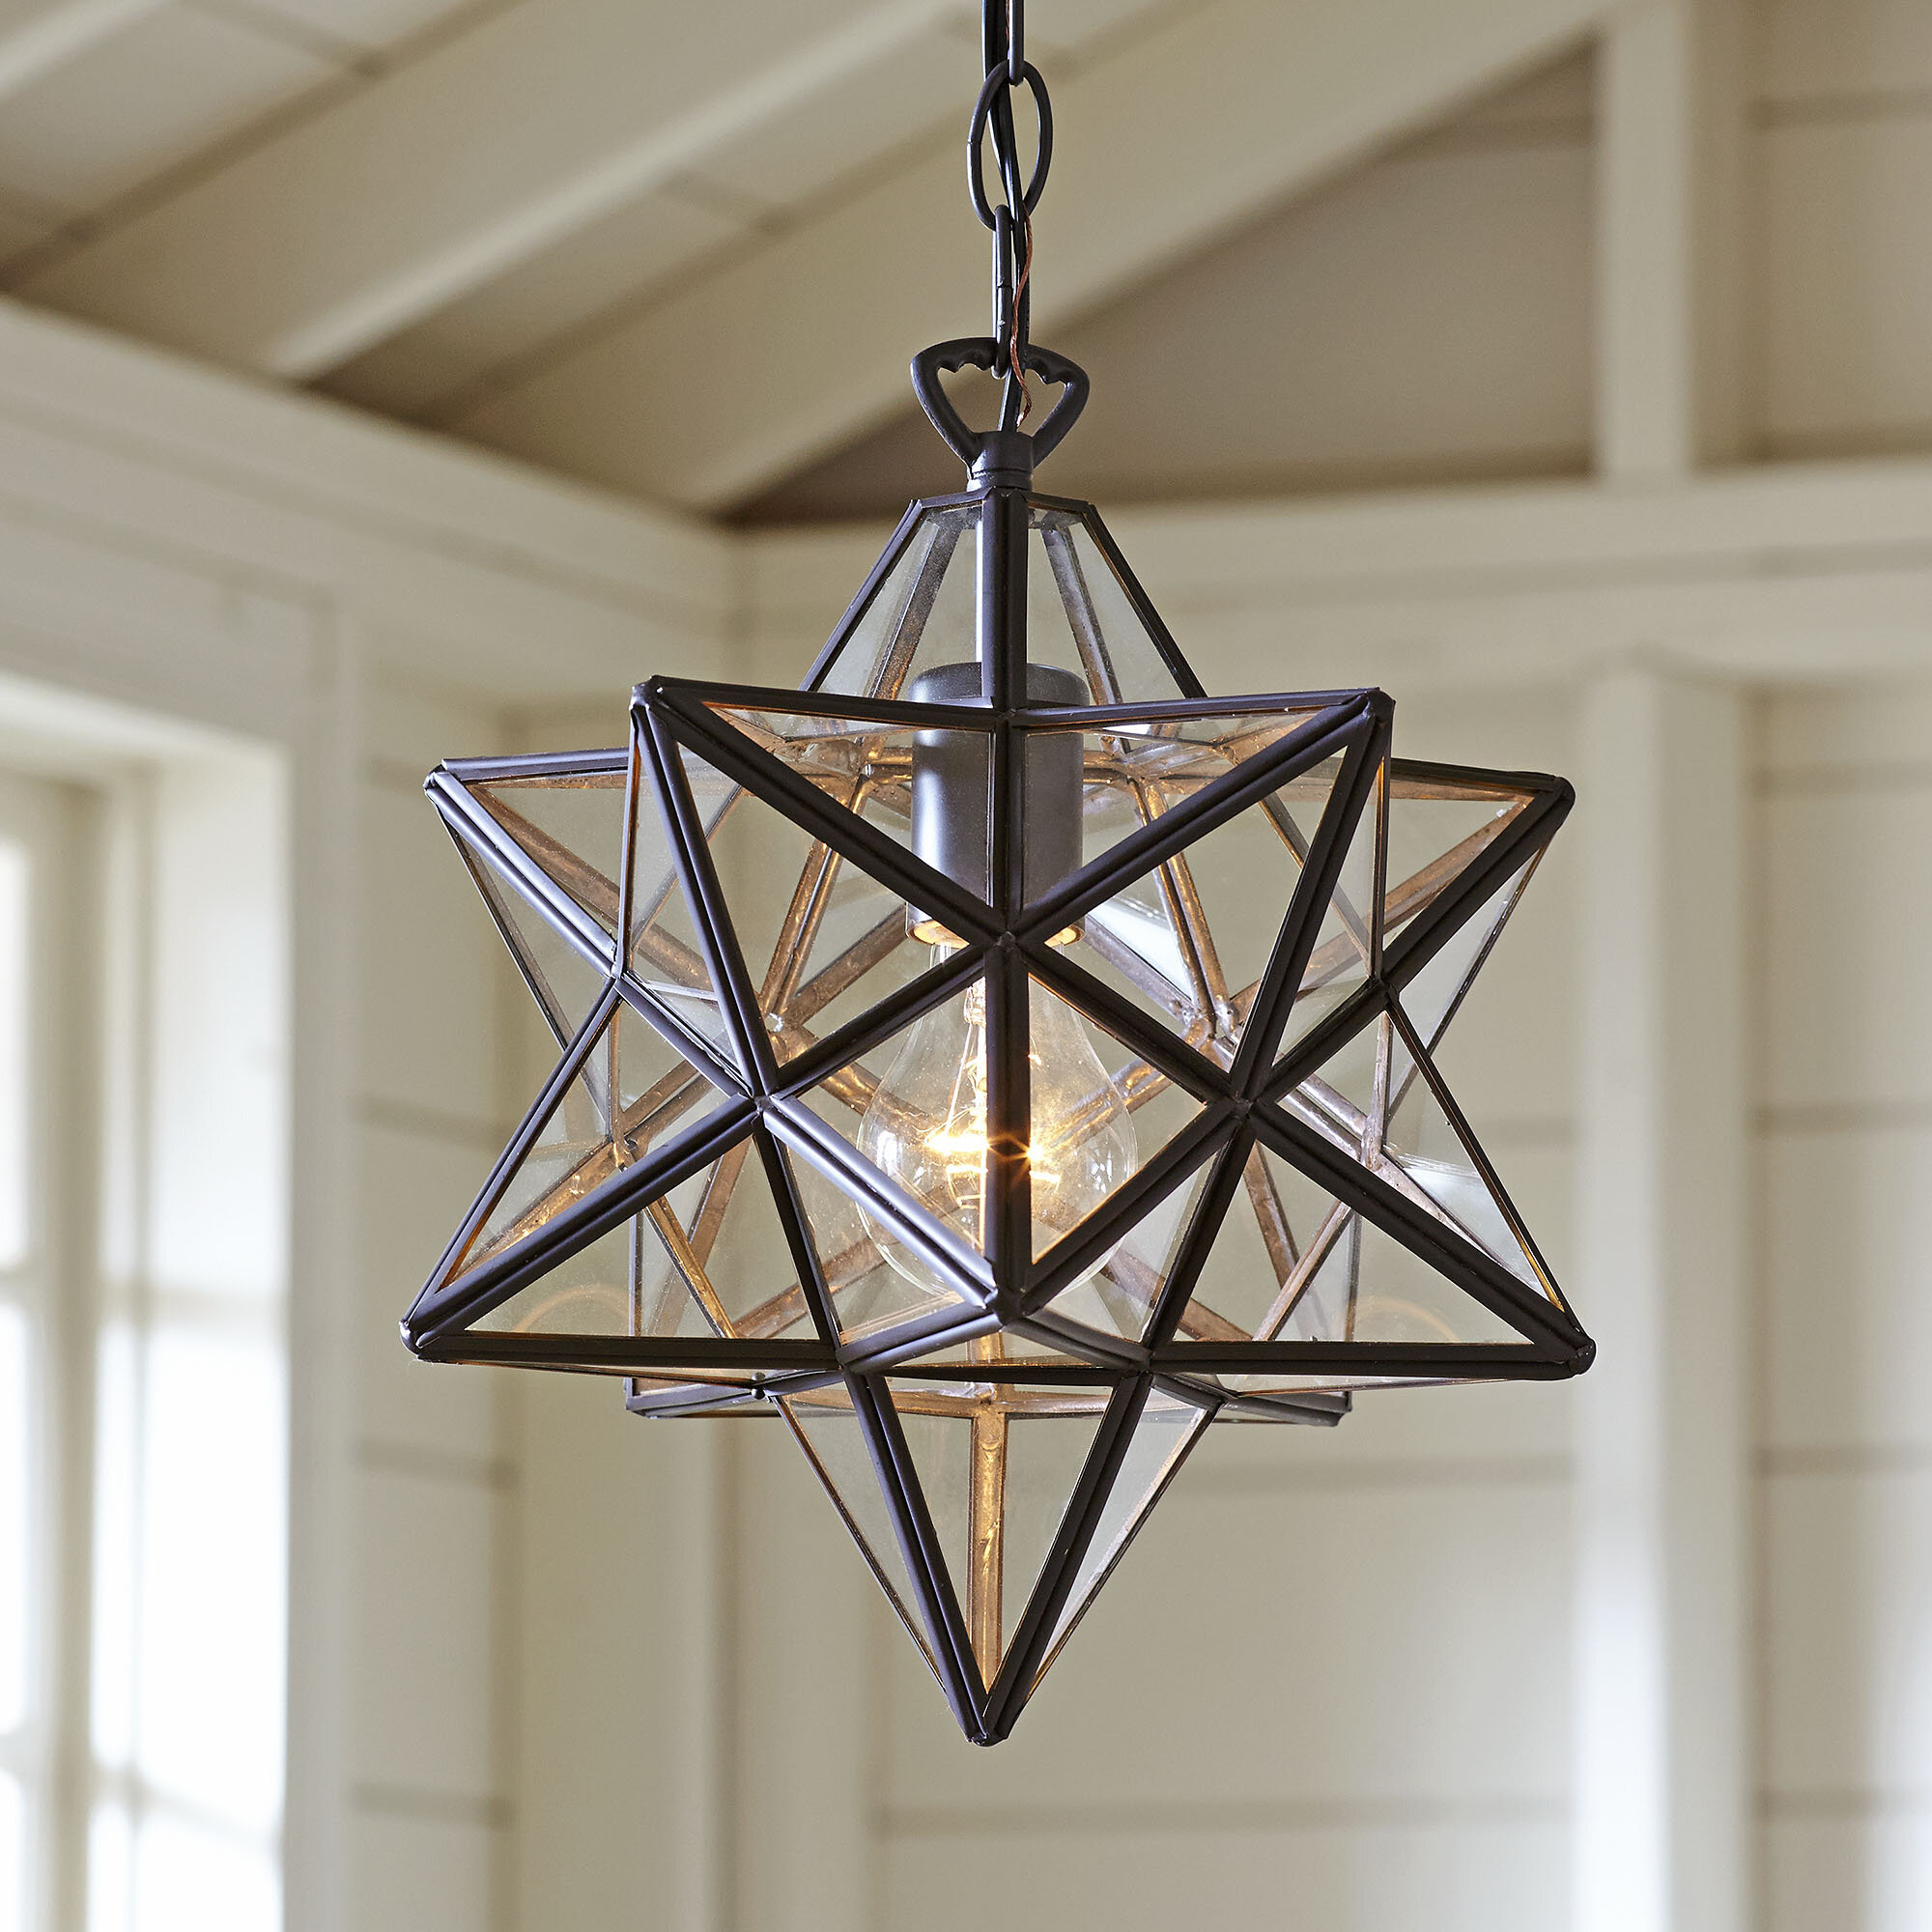 light clear antique progress with nickel pendant p essex collection foyer lighting hanging glass lights